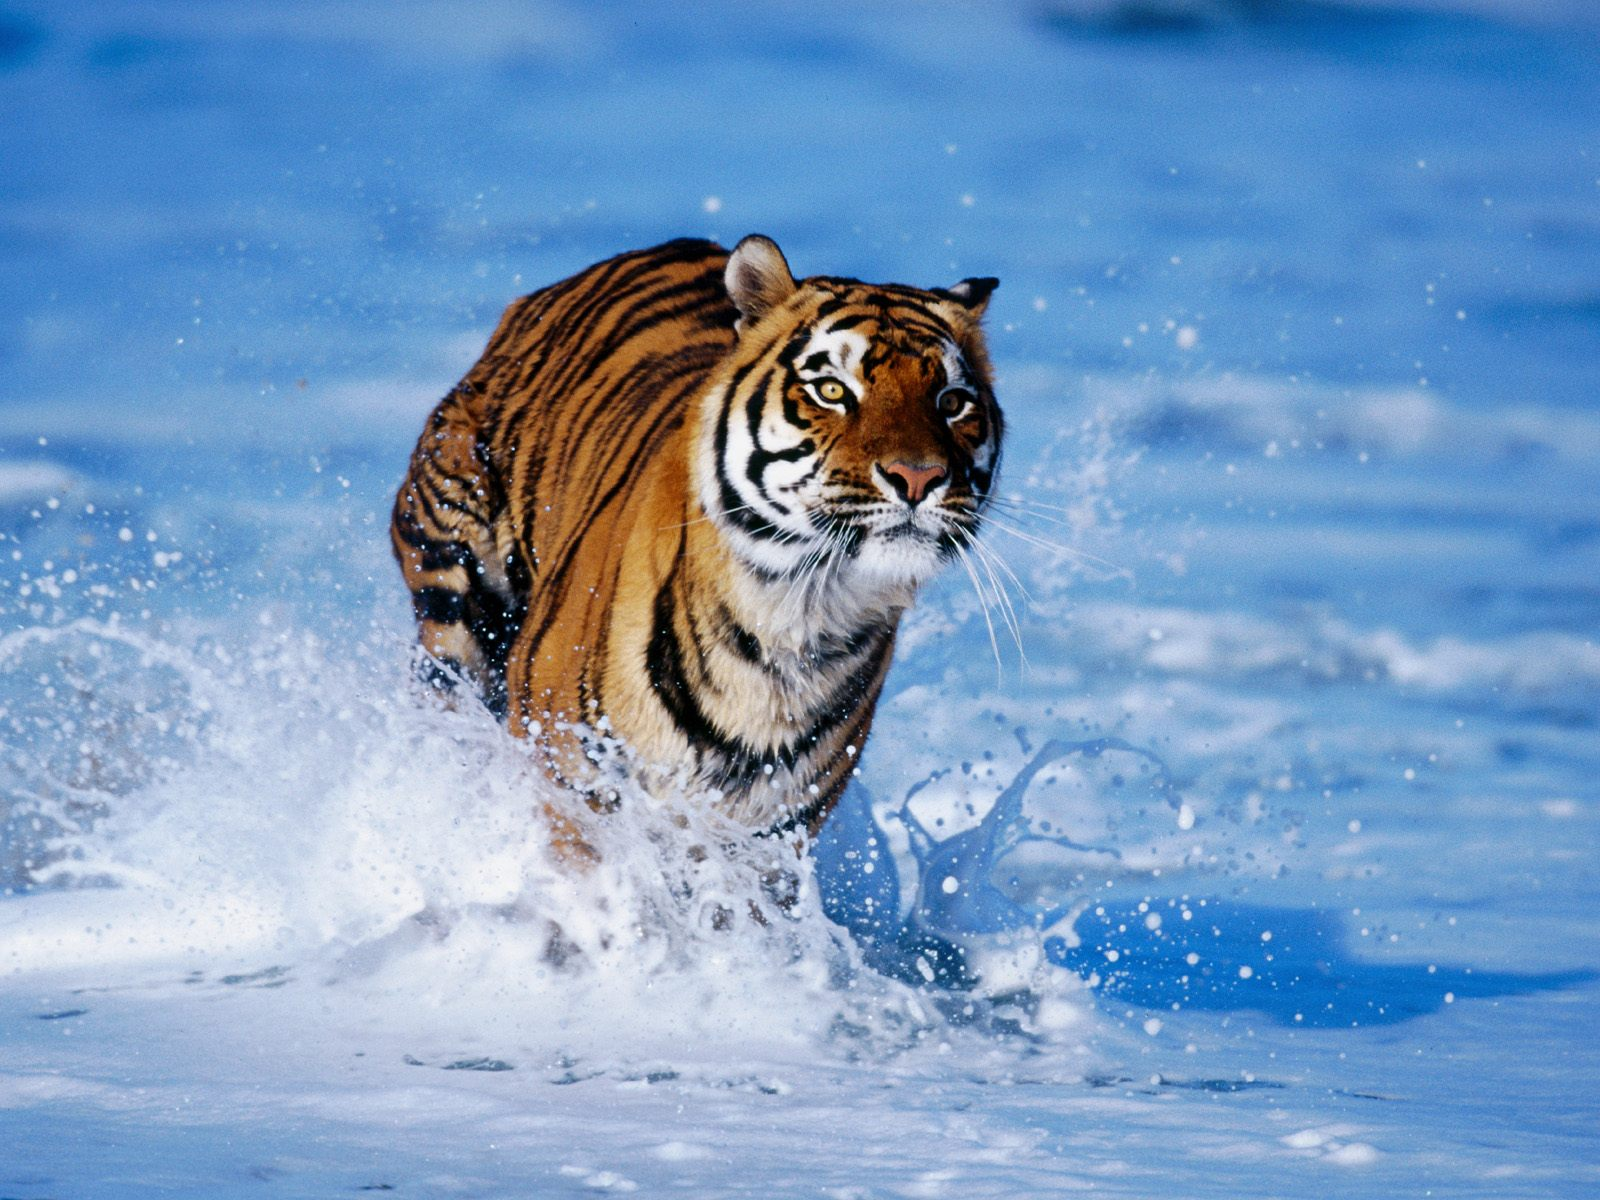 Tiger in Water Wallpapers HD Wallpapers 1600x1200